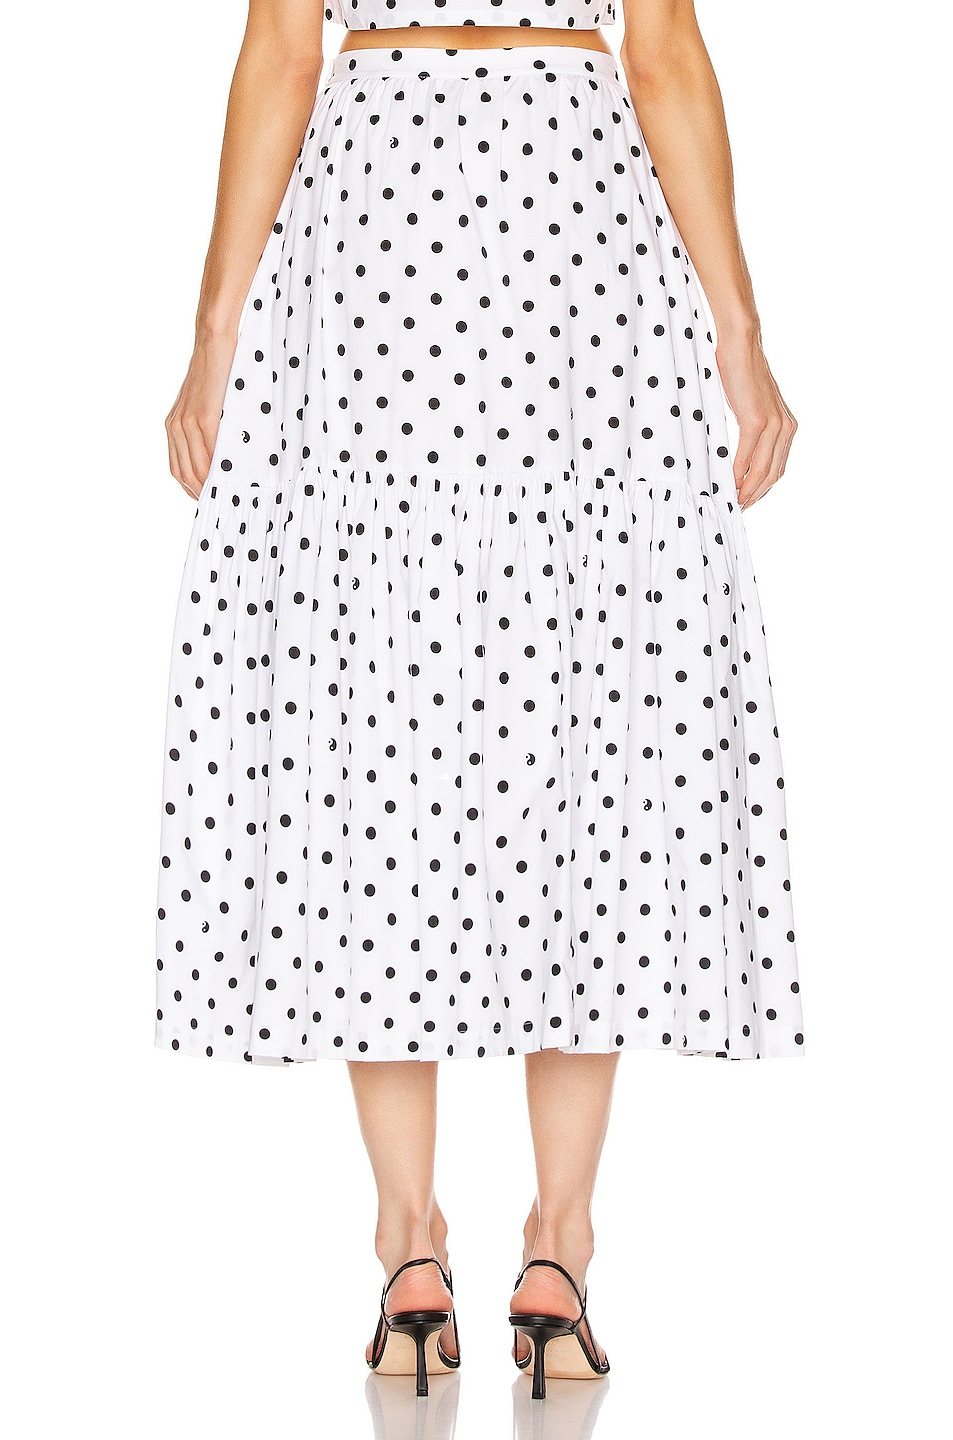 Image 3 of Staud Orchid Skirt in White Dot